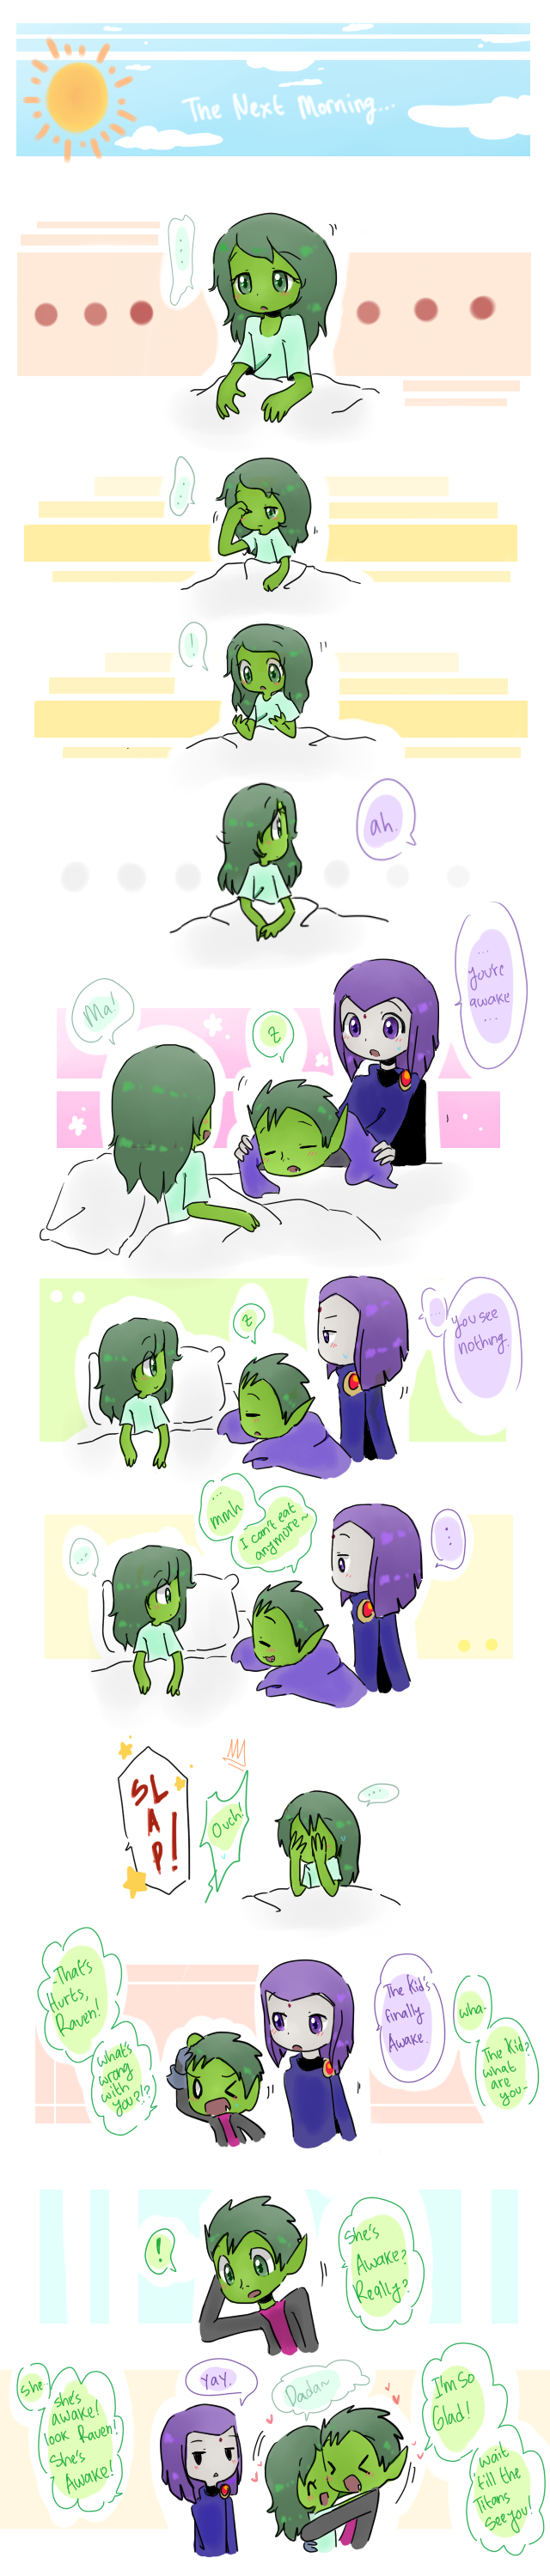 .: Sakutia Disease : Page 9 :. by FnFiNdOART